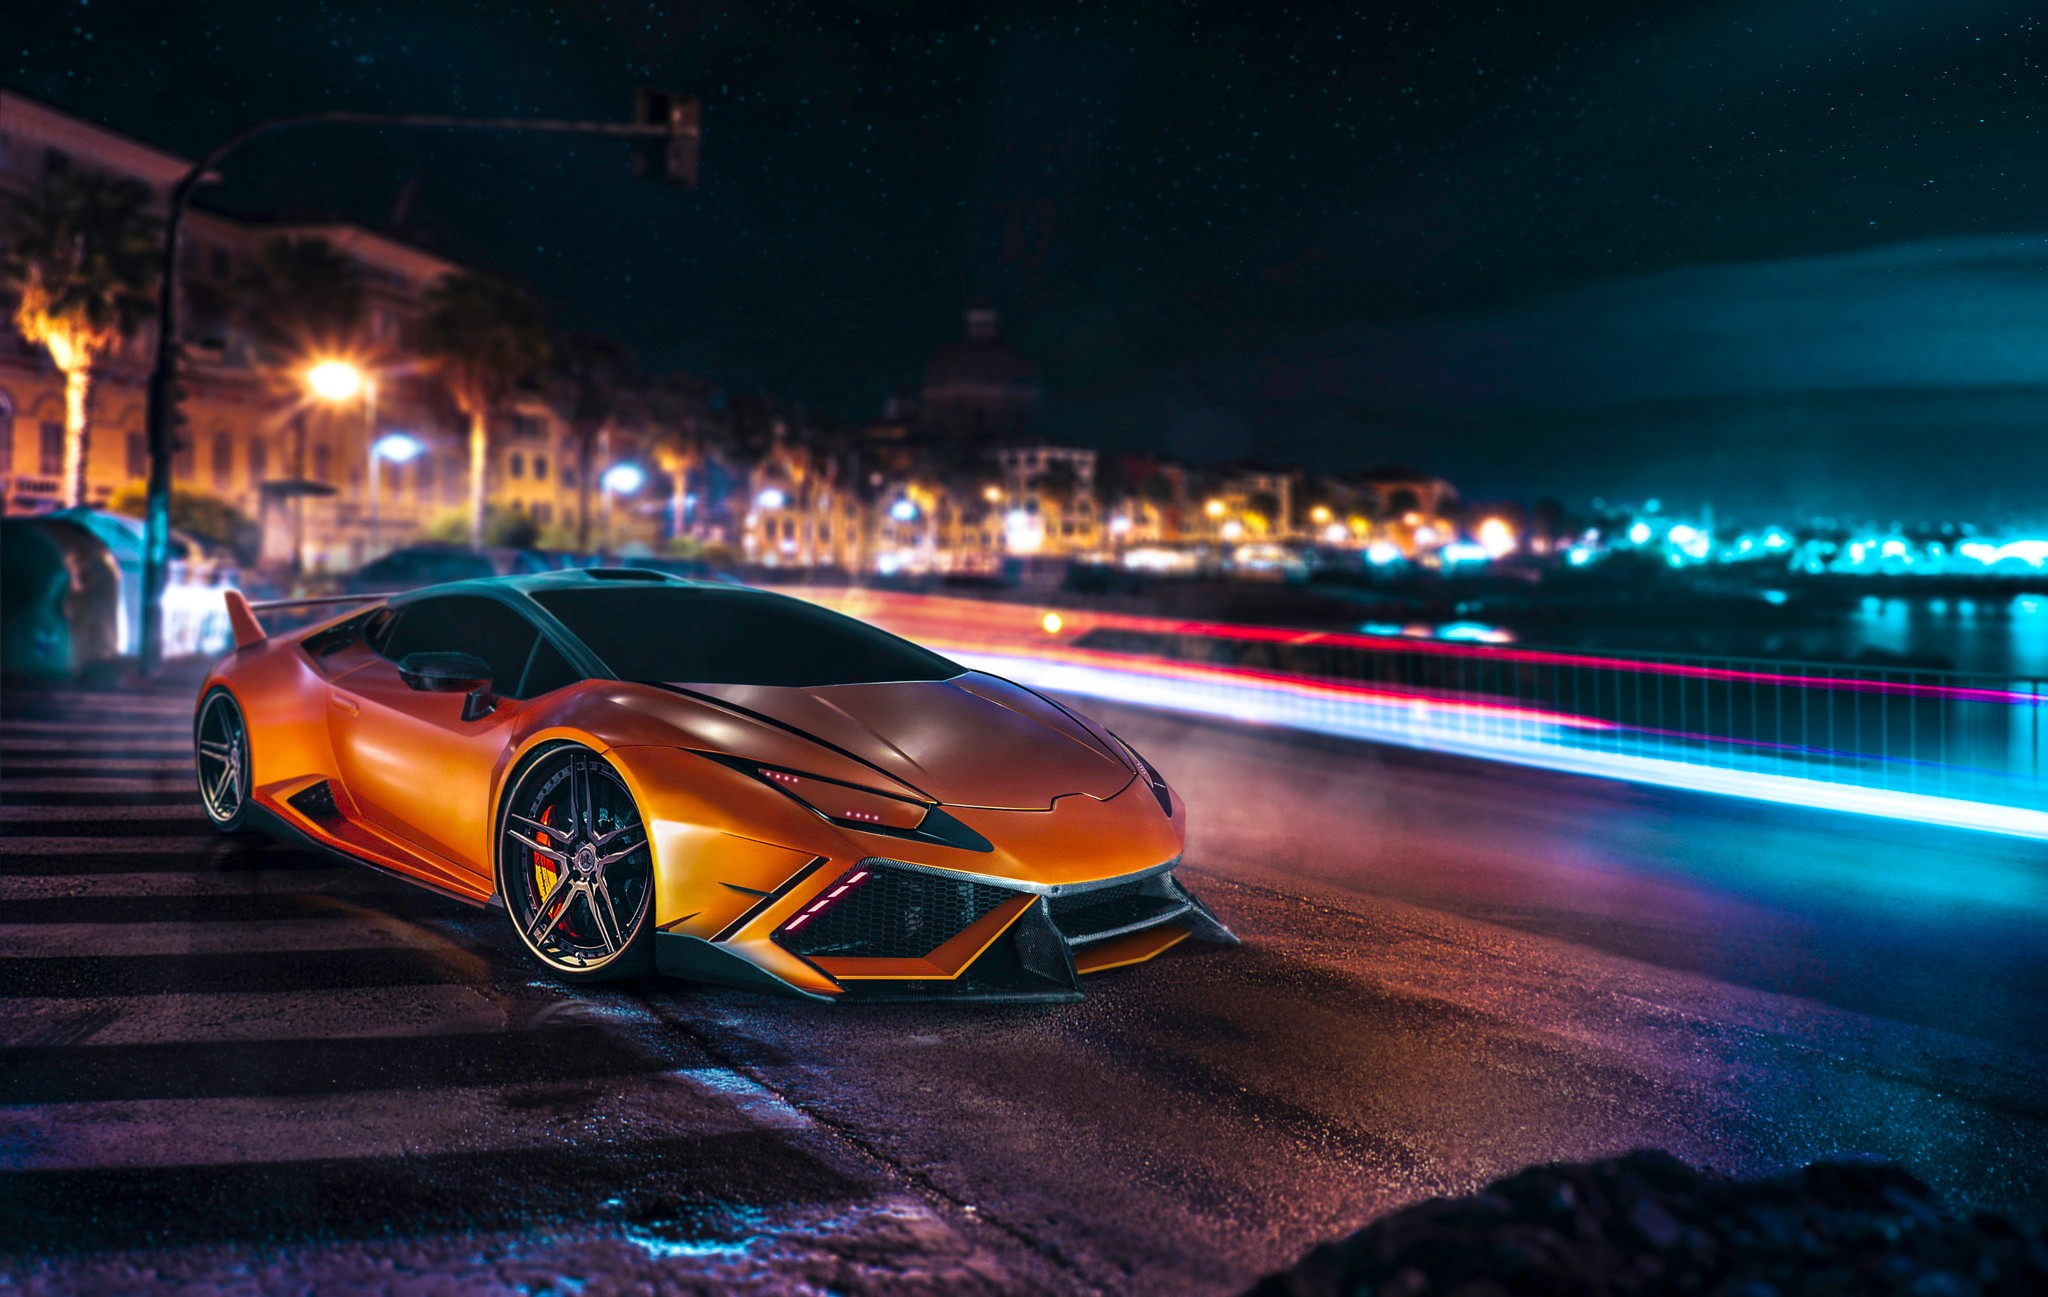 Lamborghini Huracan Full HD, HD Cars, 4k Wallpapers ...